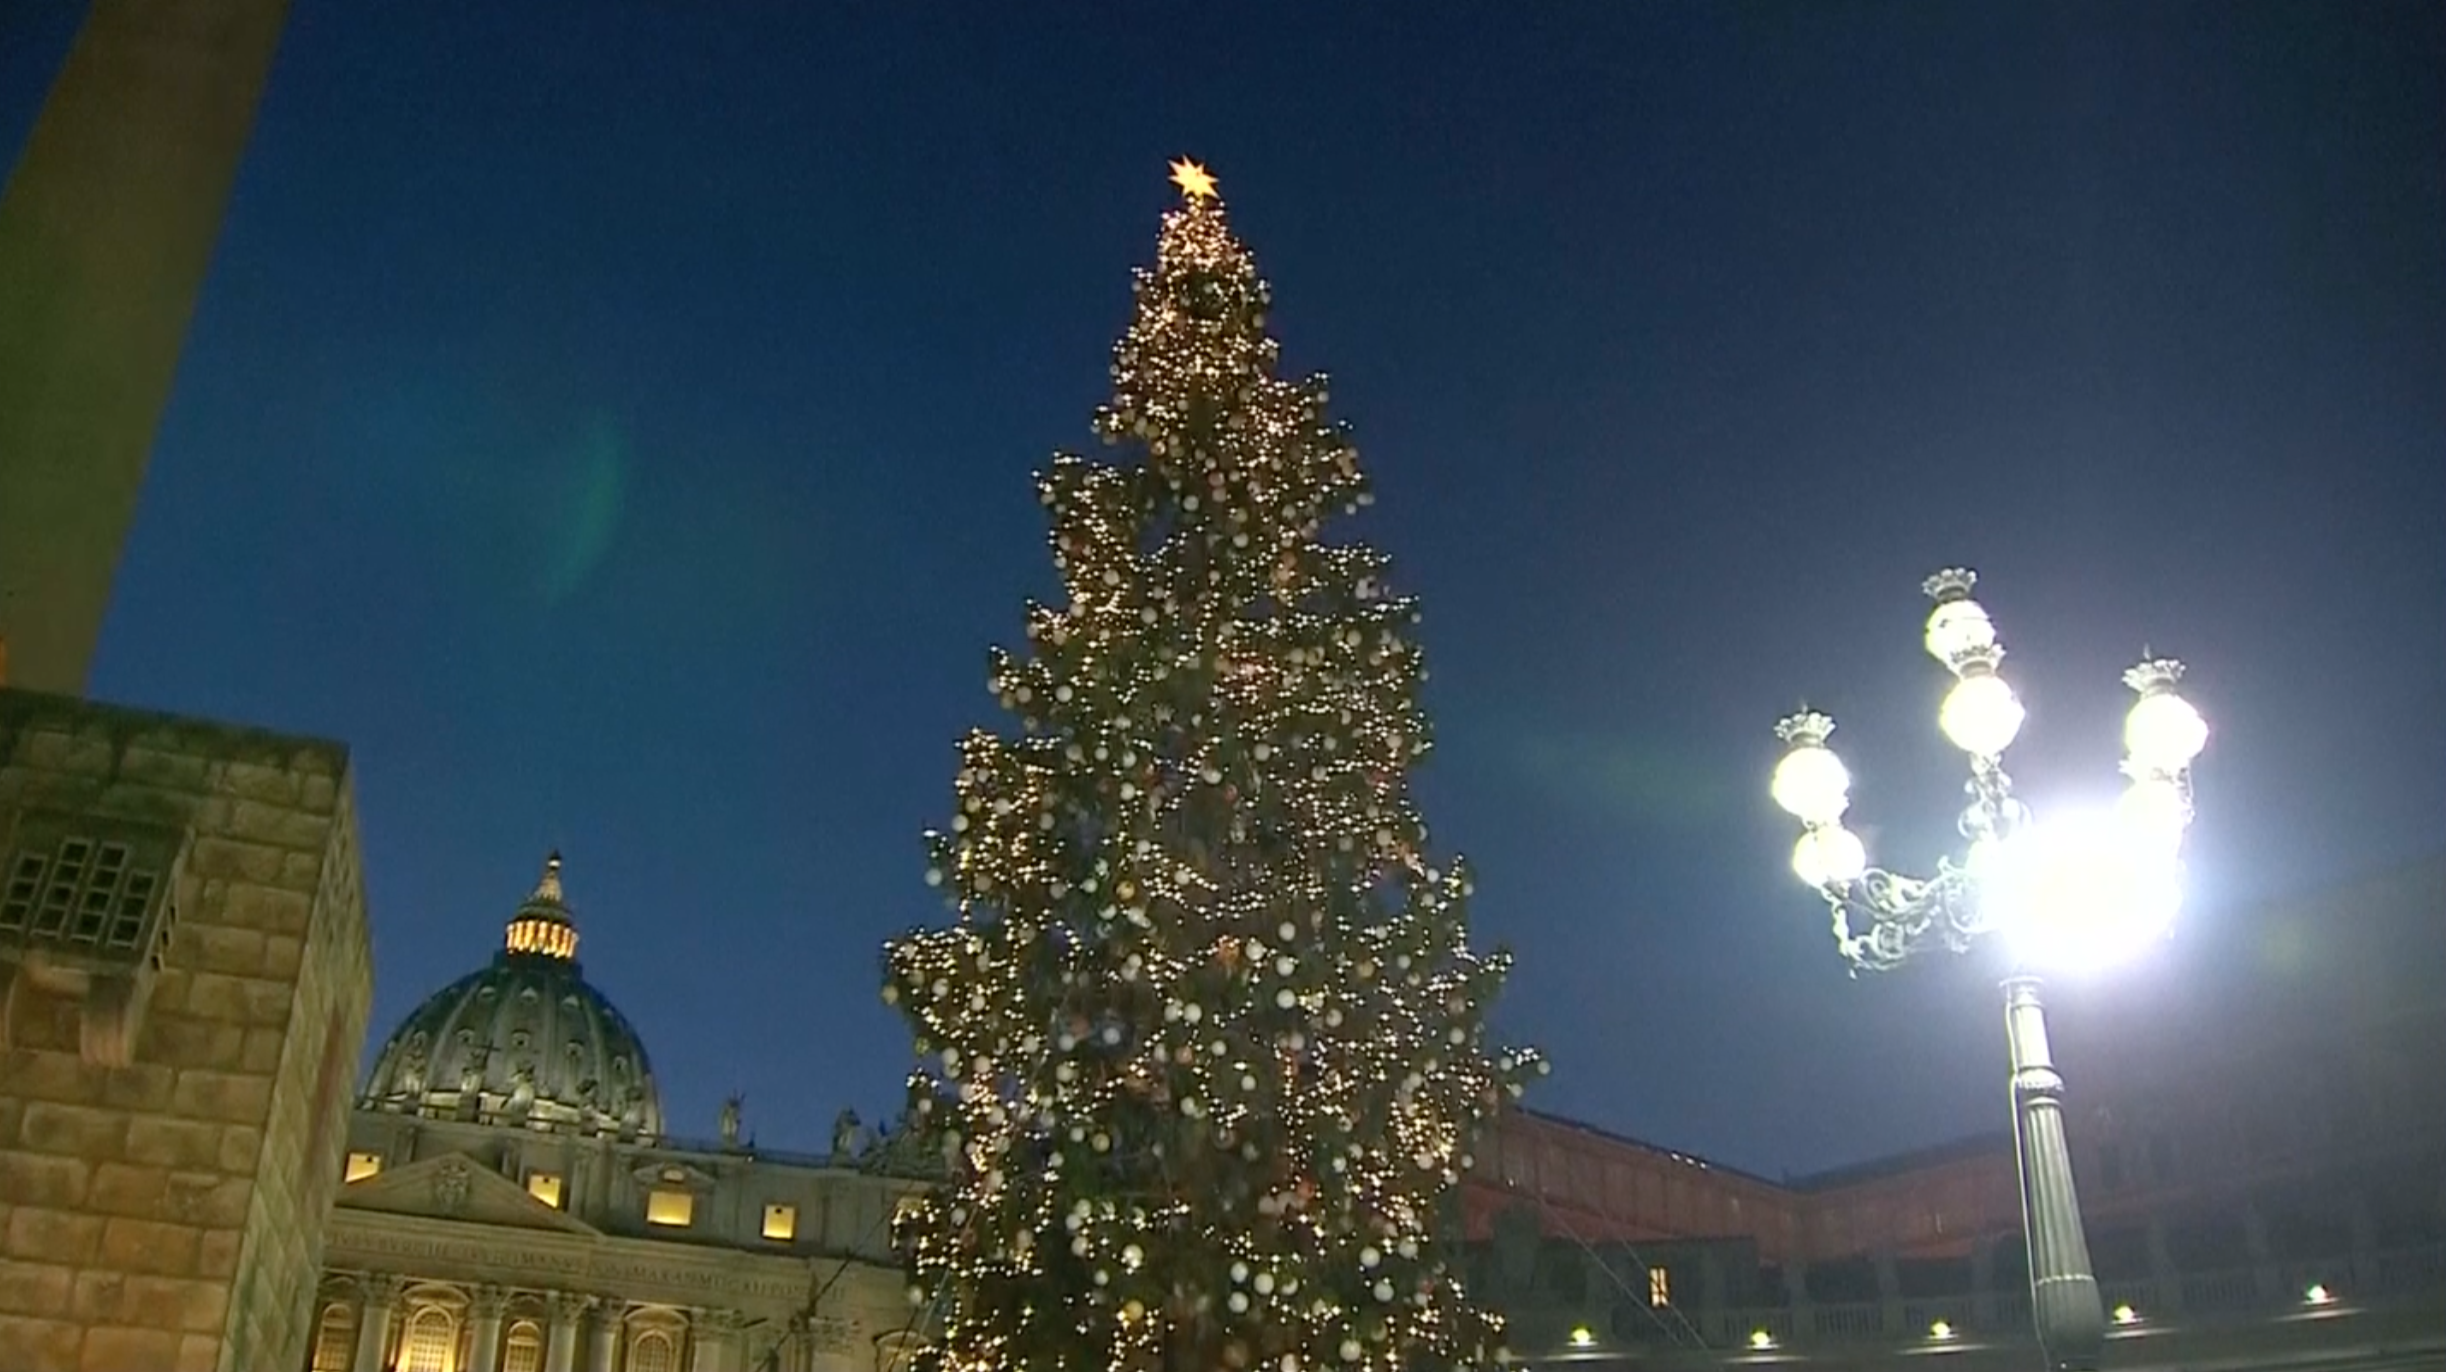 Vatican Christmas Ornaments Part - 17: Vatican Christmas Tree Is Lit In St. Peteru0027s Square, Adorned With Ornaments  Made From Sick Children Across Italy And The Nativity Scene Includes A  Spire ...